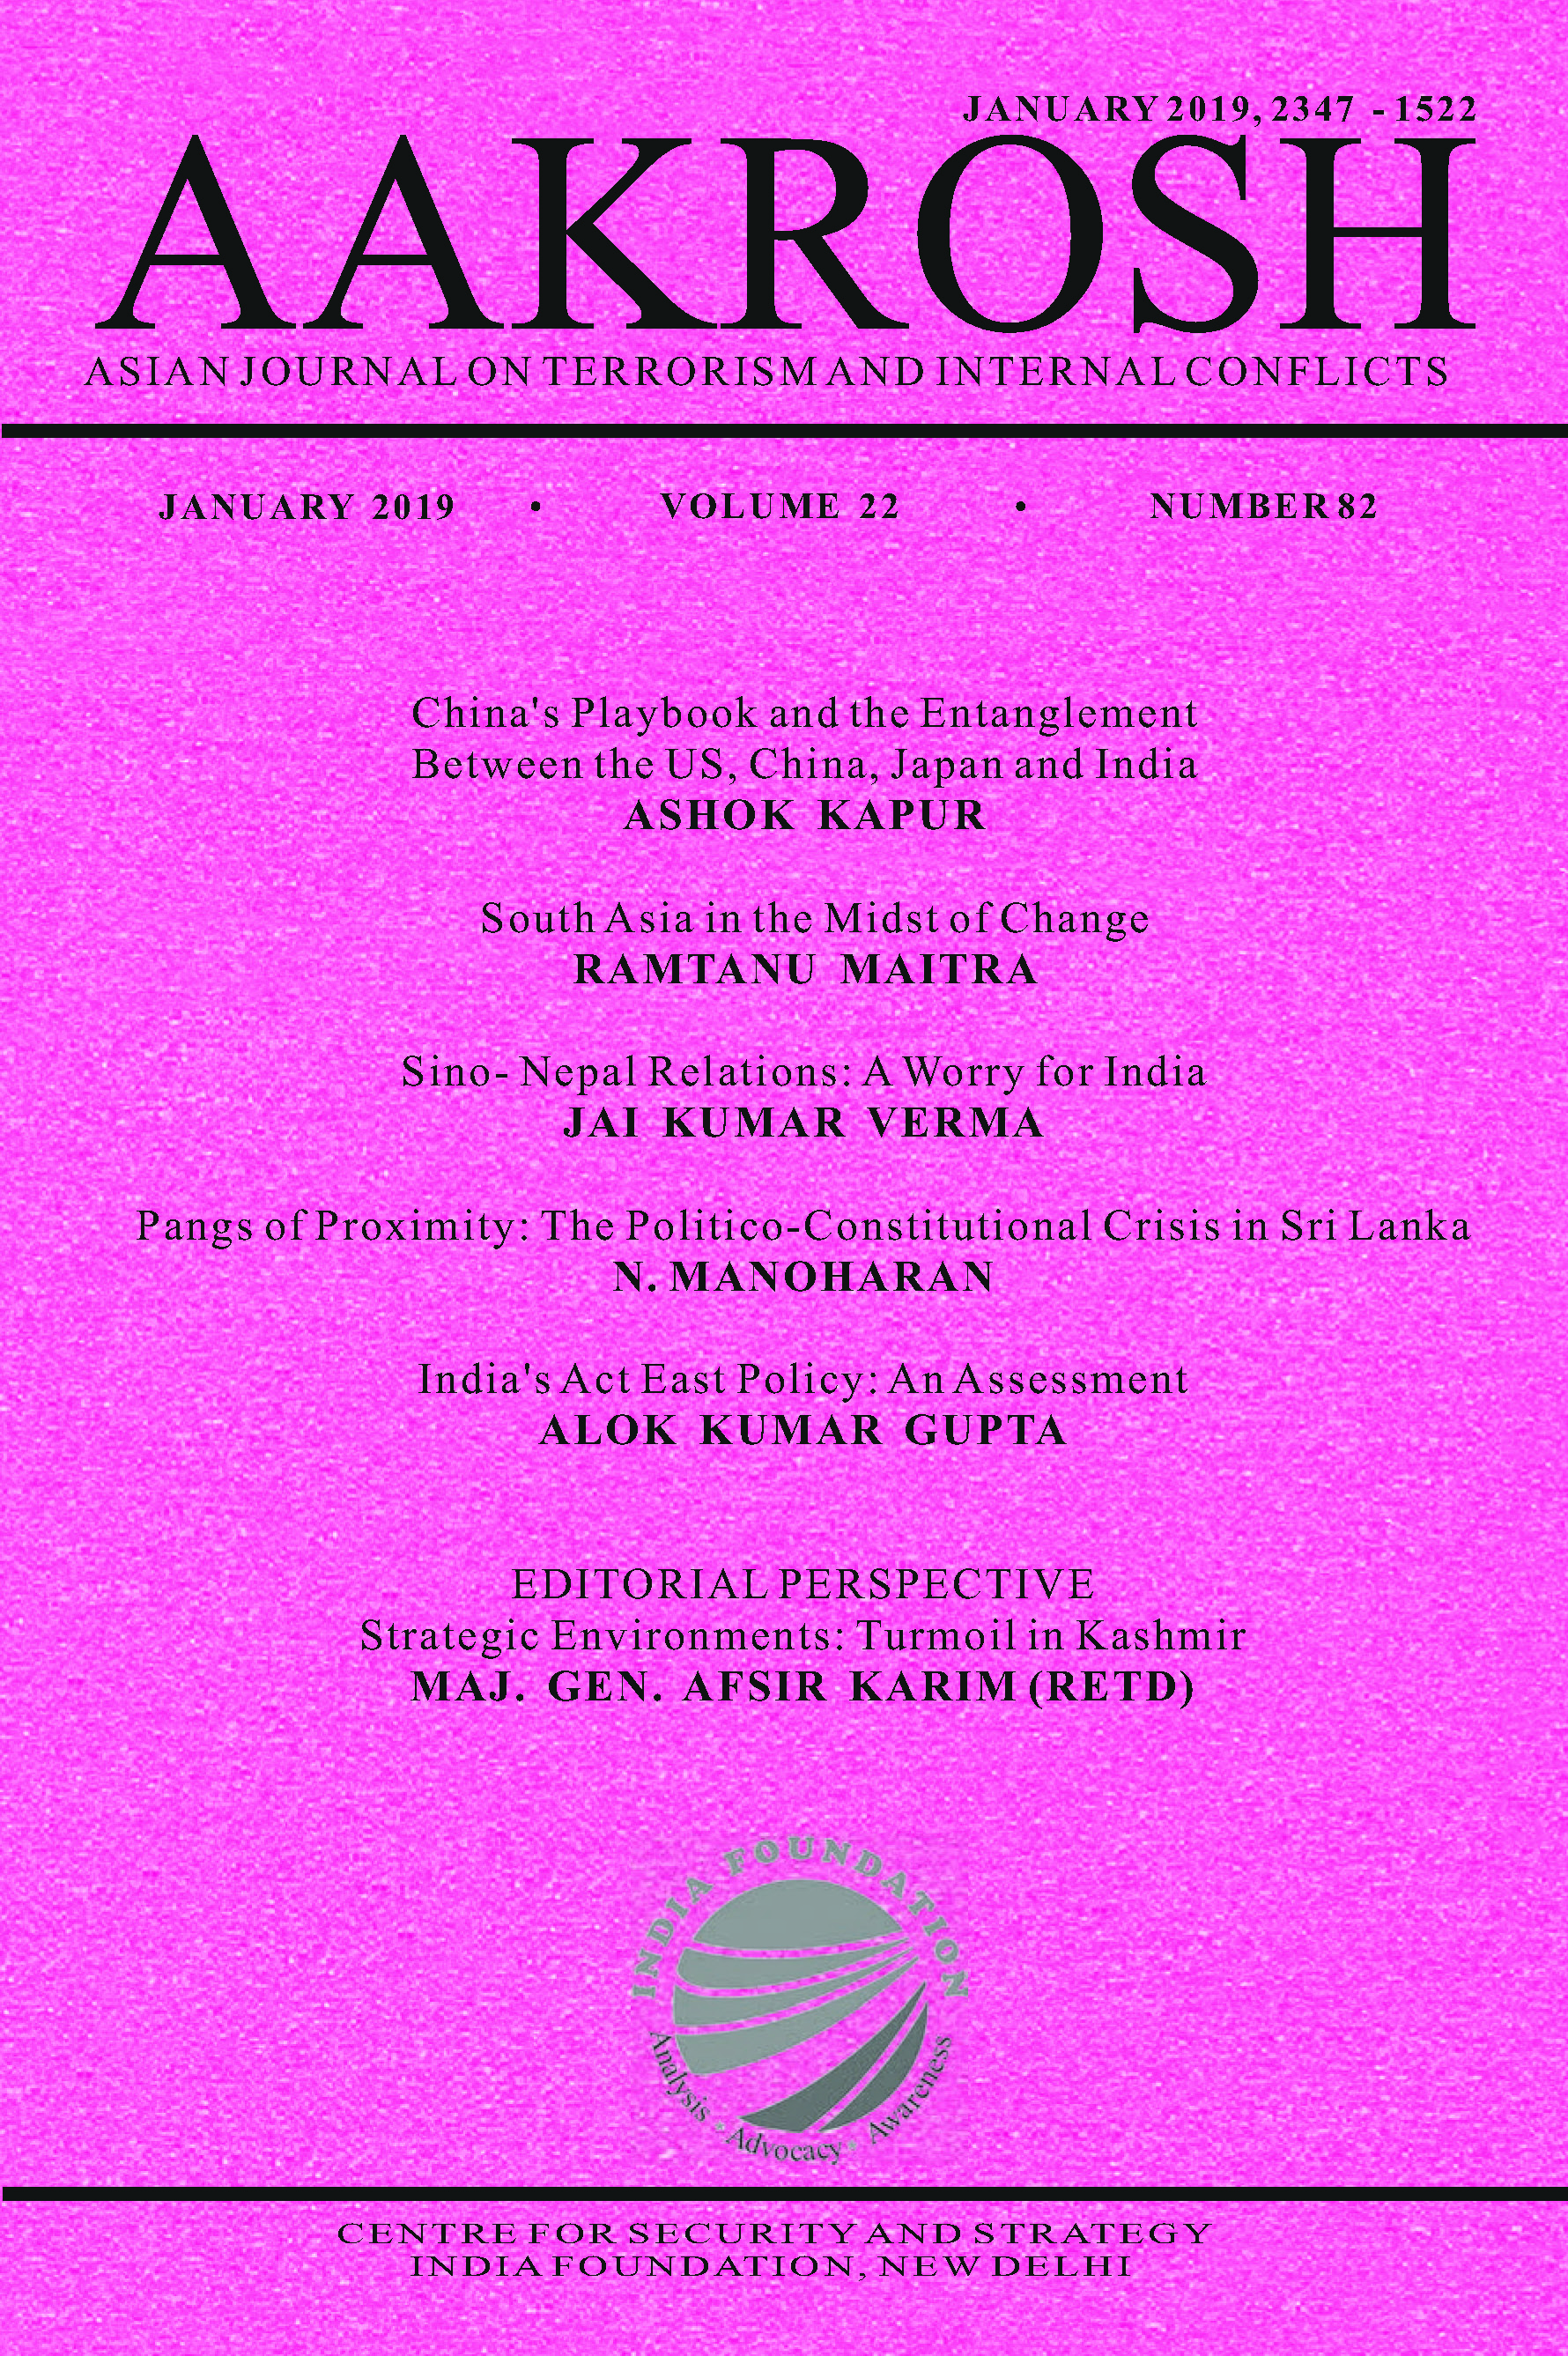 Aakrosh Journal No. 82, Vol. 22